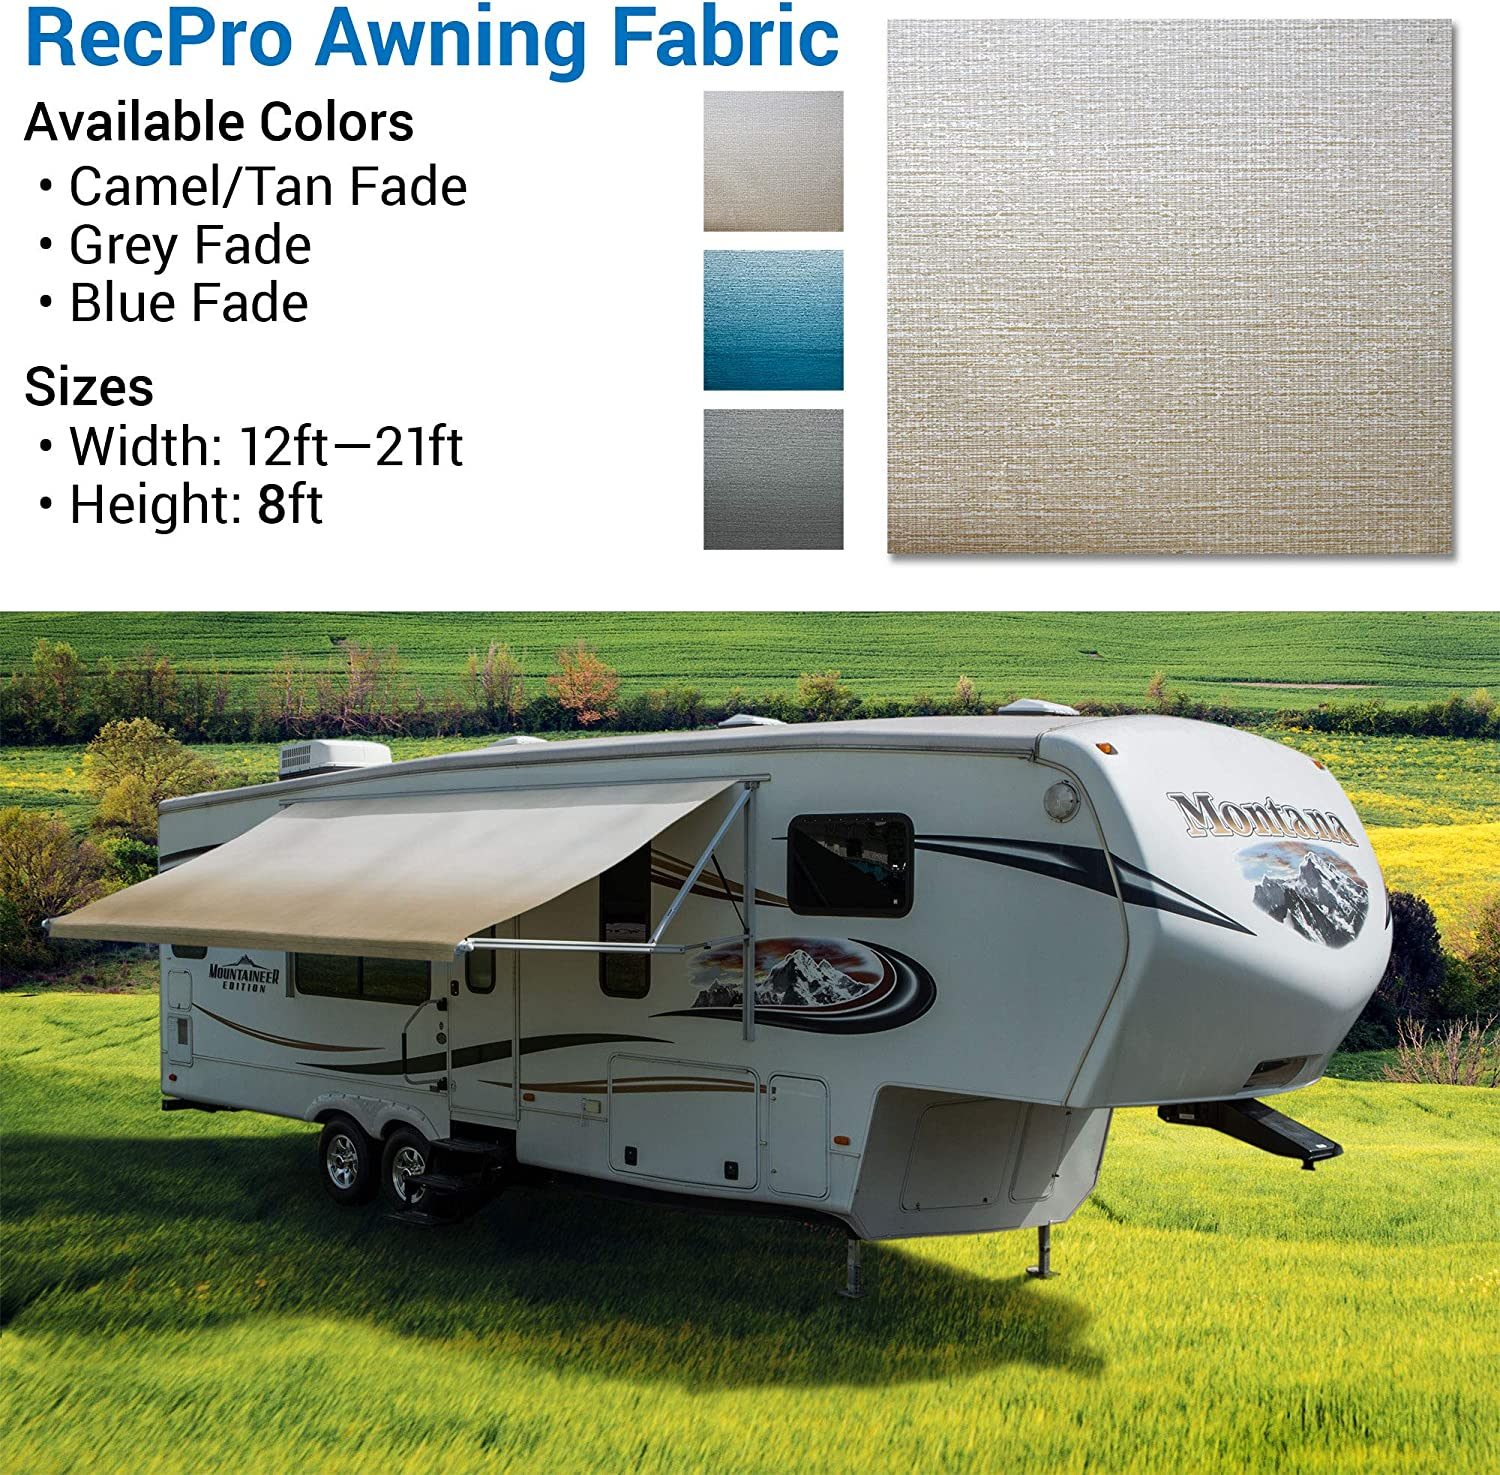 """15 Feet Width Length RV Awning Replacement Tan//Camel Fade Variety of Color Options Premium Vinyl 3//16/"""" Diameter Beading Cord 96 Heat-Sealed RecPro RV Awning Fabric 8"""